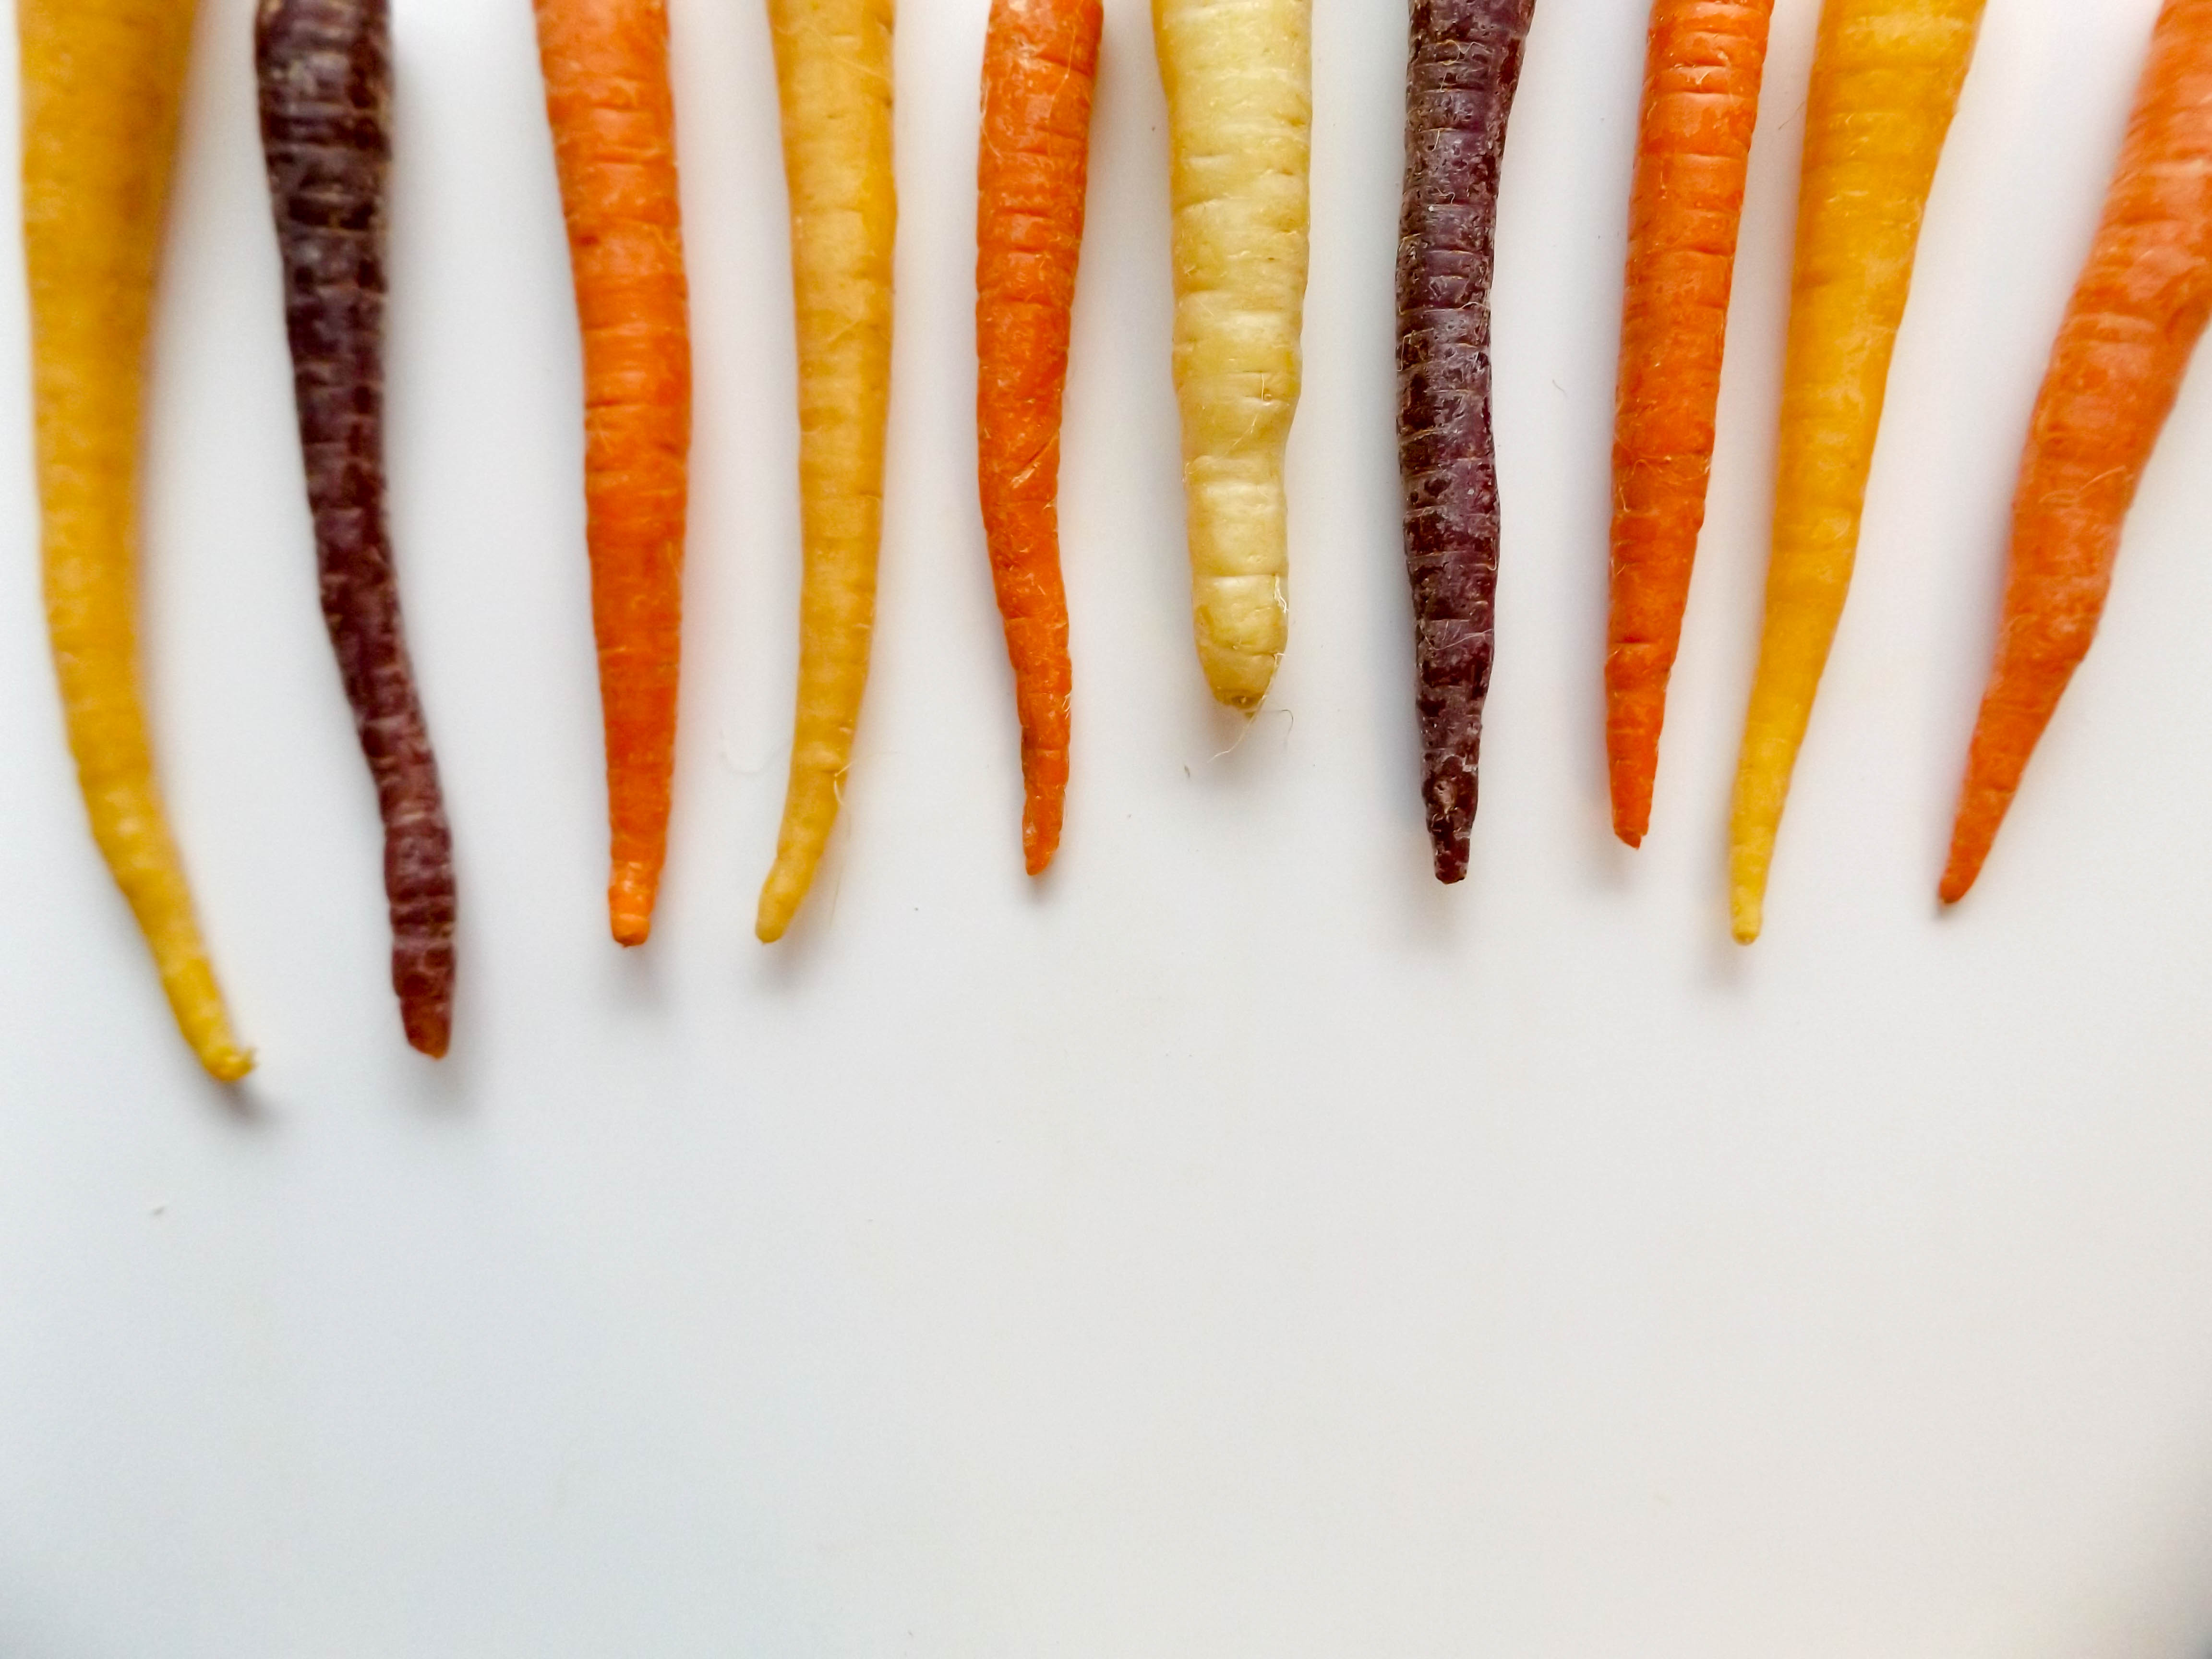 Featured Ingredient: Carrots